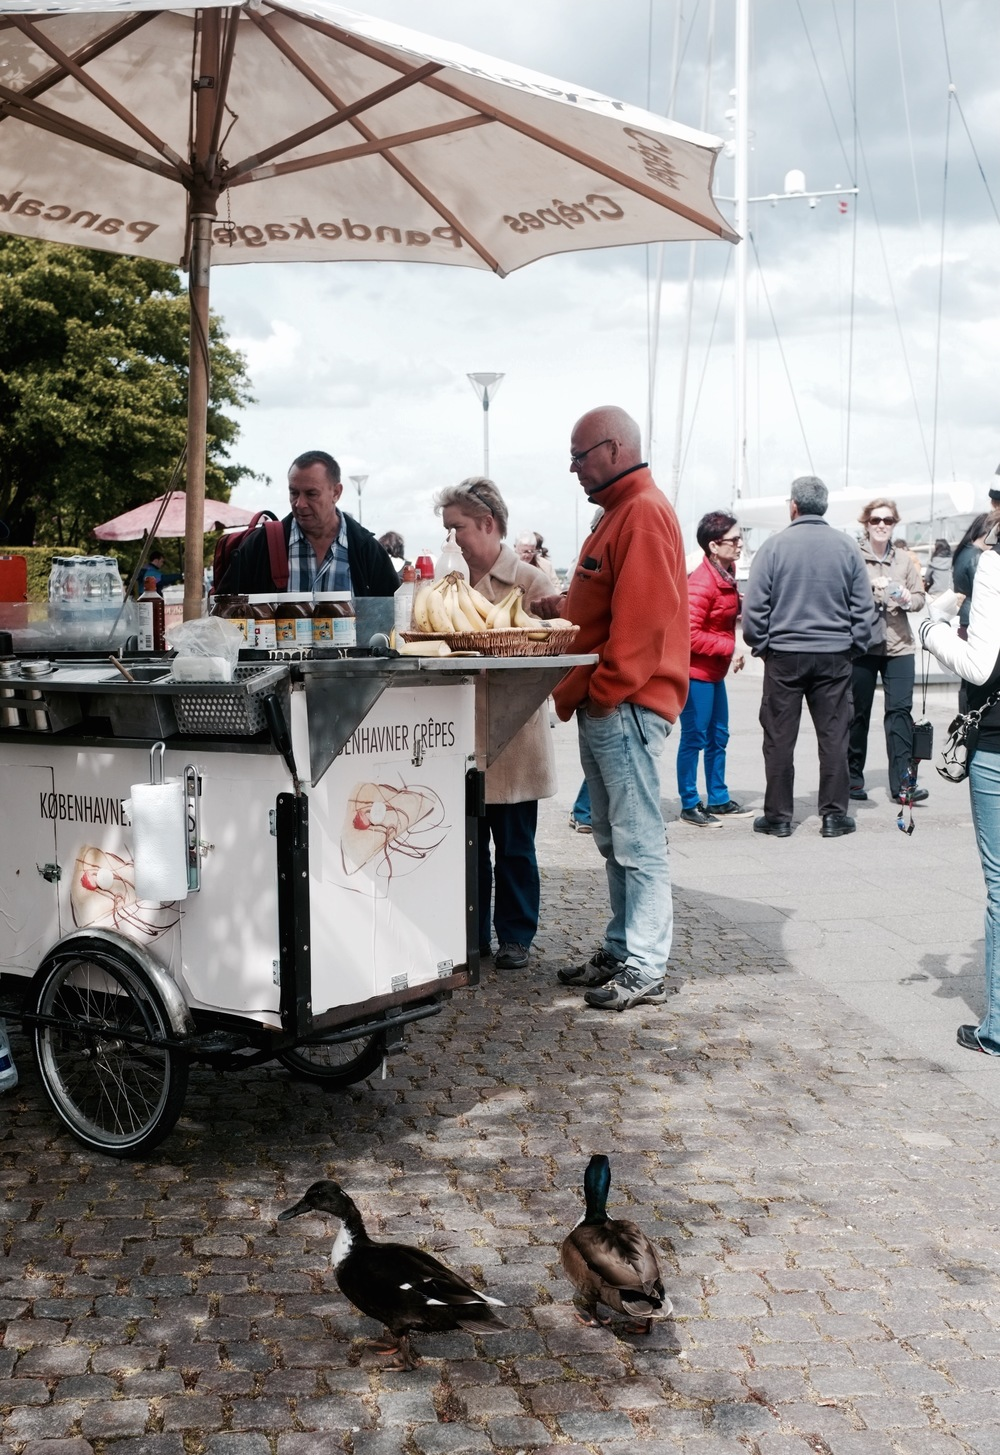 Hot Dog Cart in Copenhagen - Hill Reeves